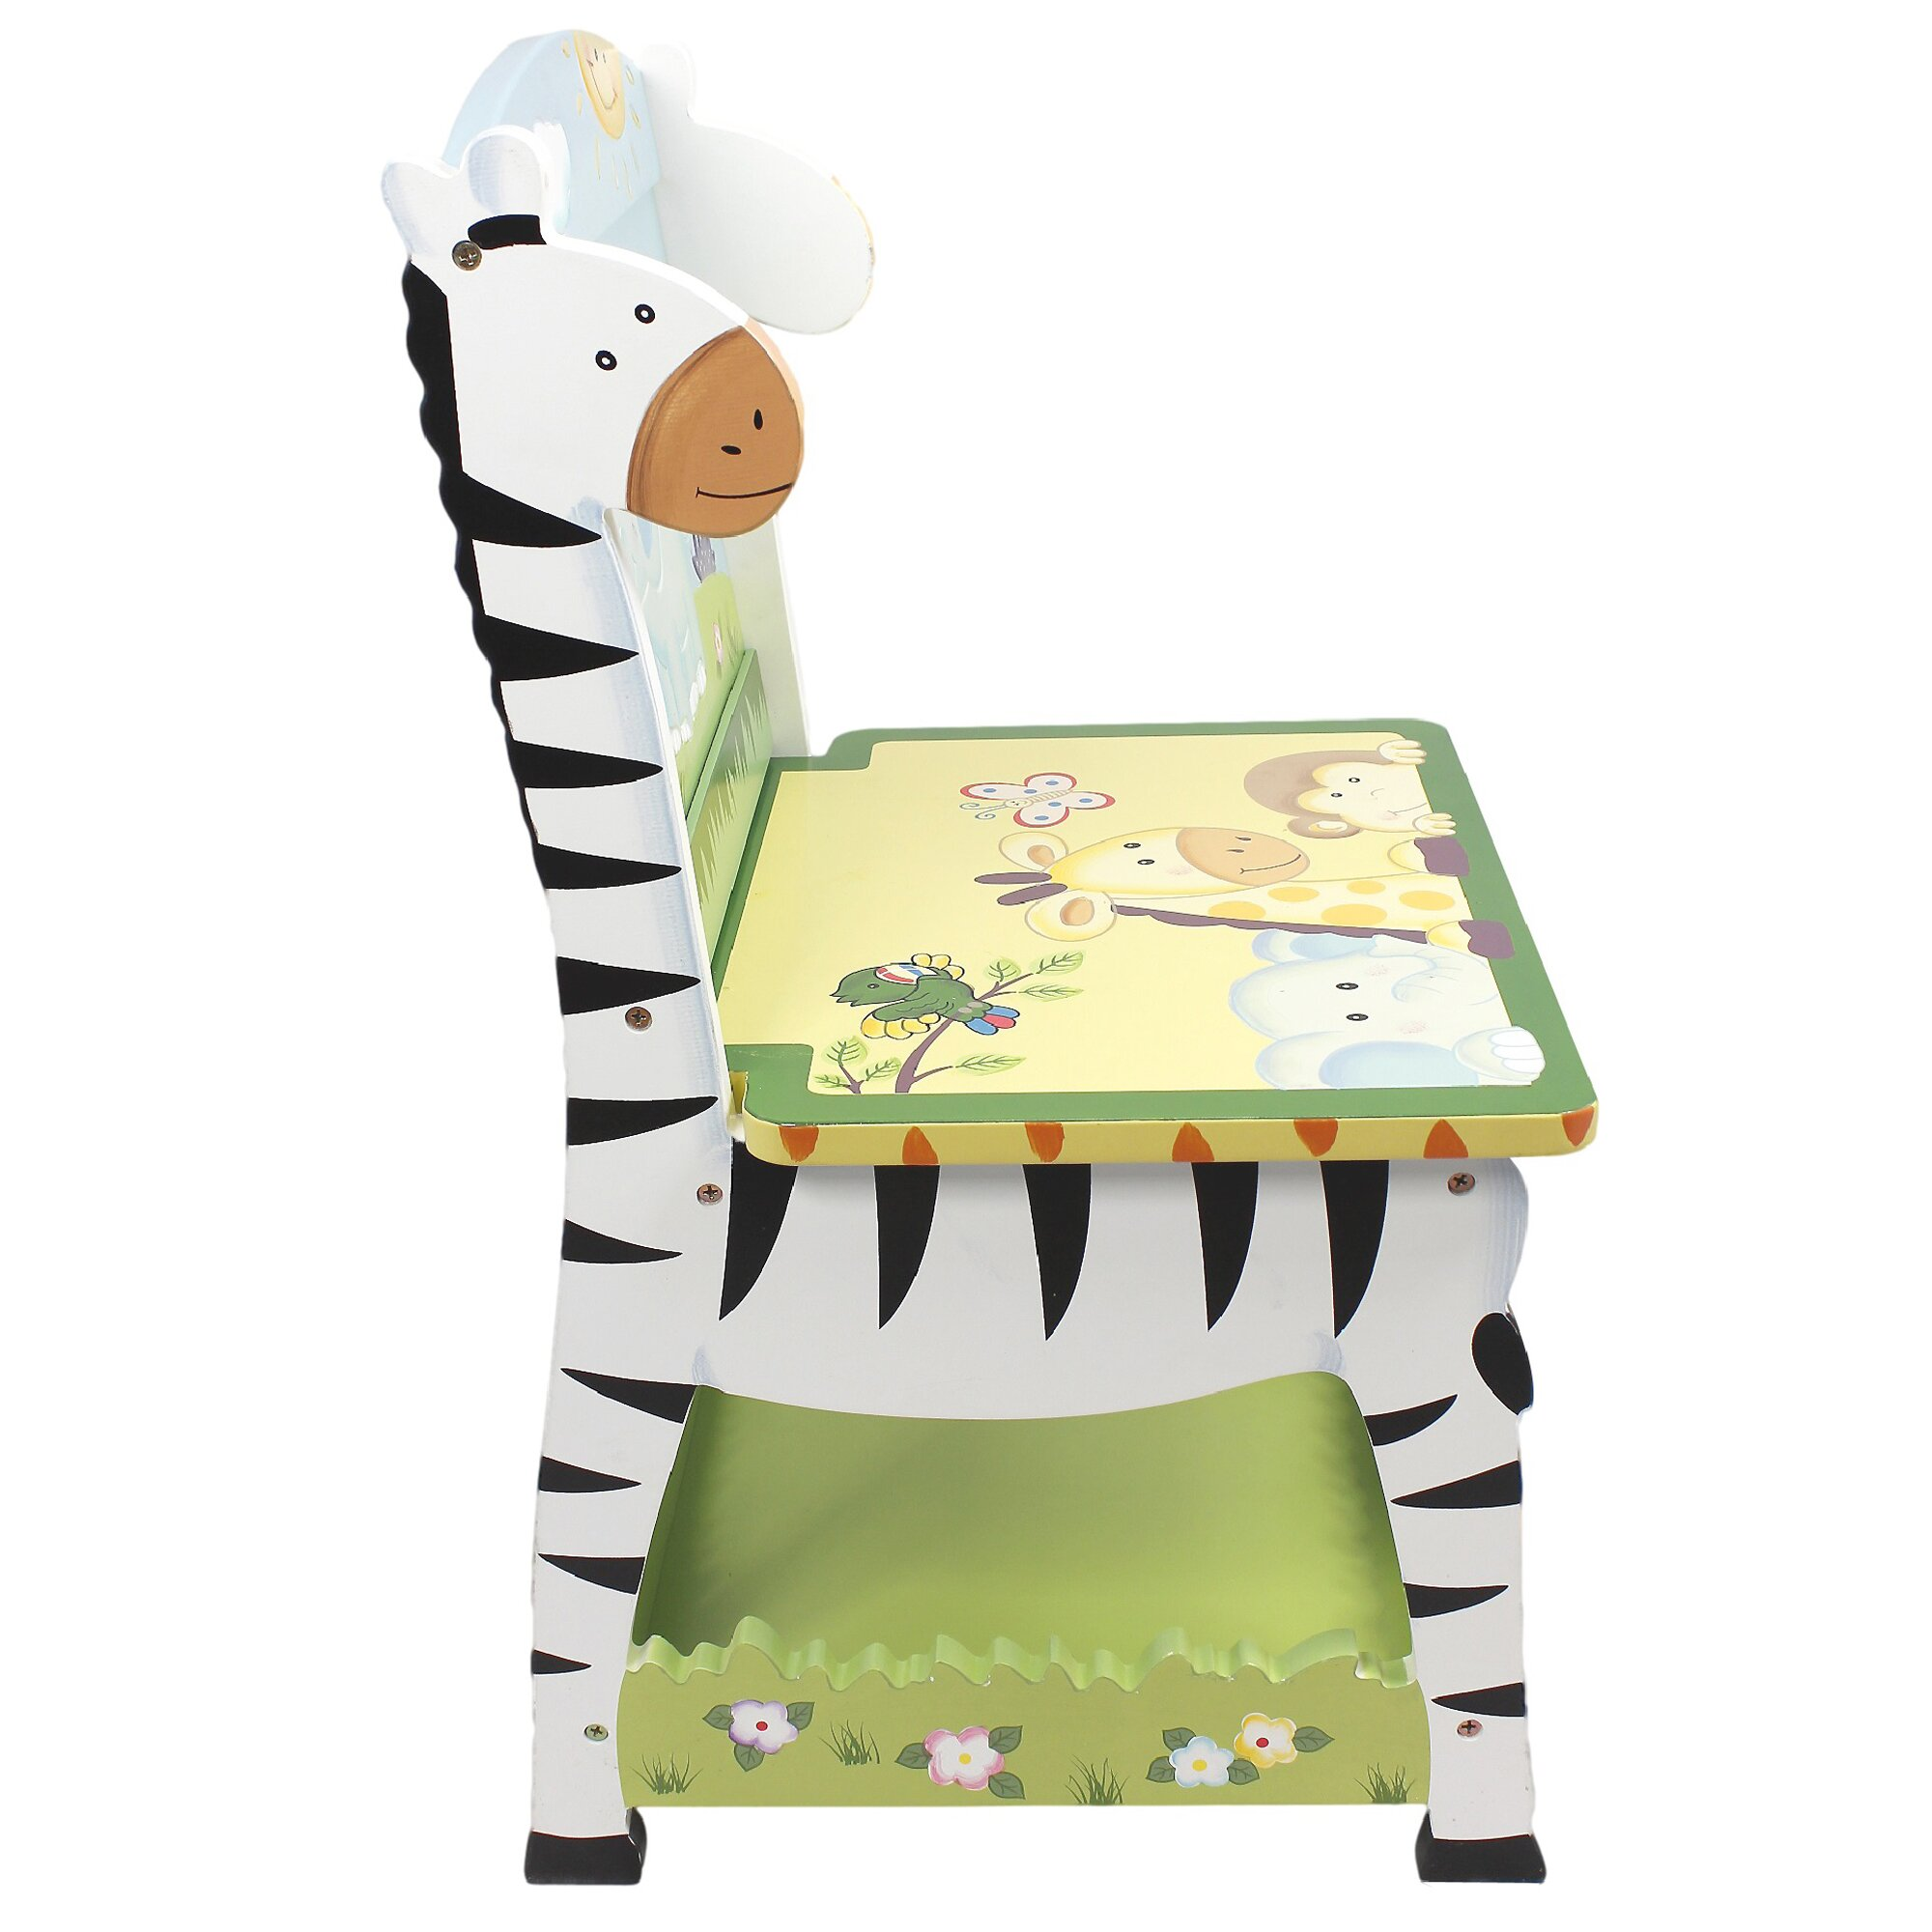 fantasy fields sunny safari kids desk chair and bench set bedroompicturesque comfortable desk chairs enjoy work